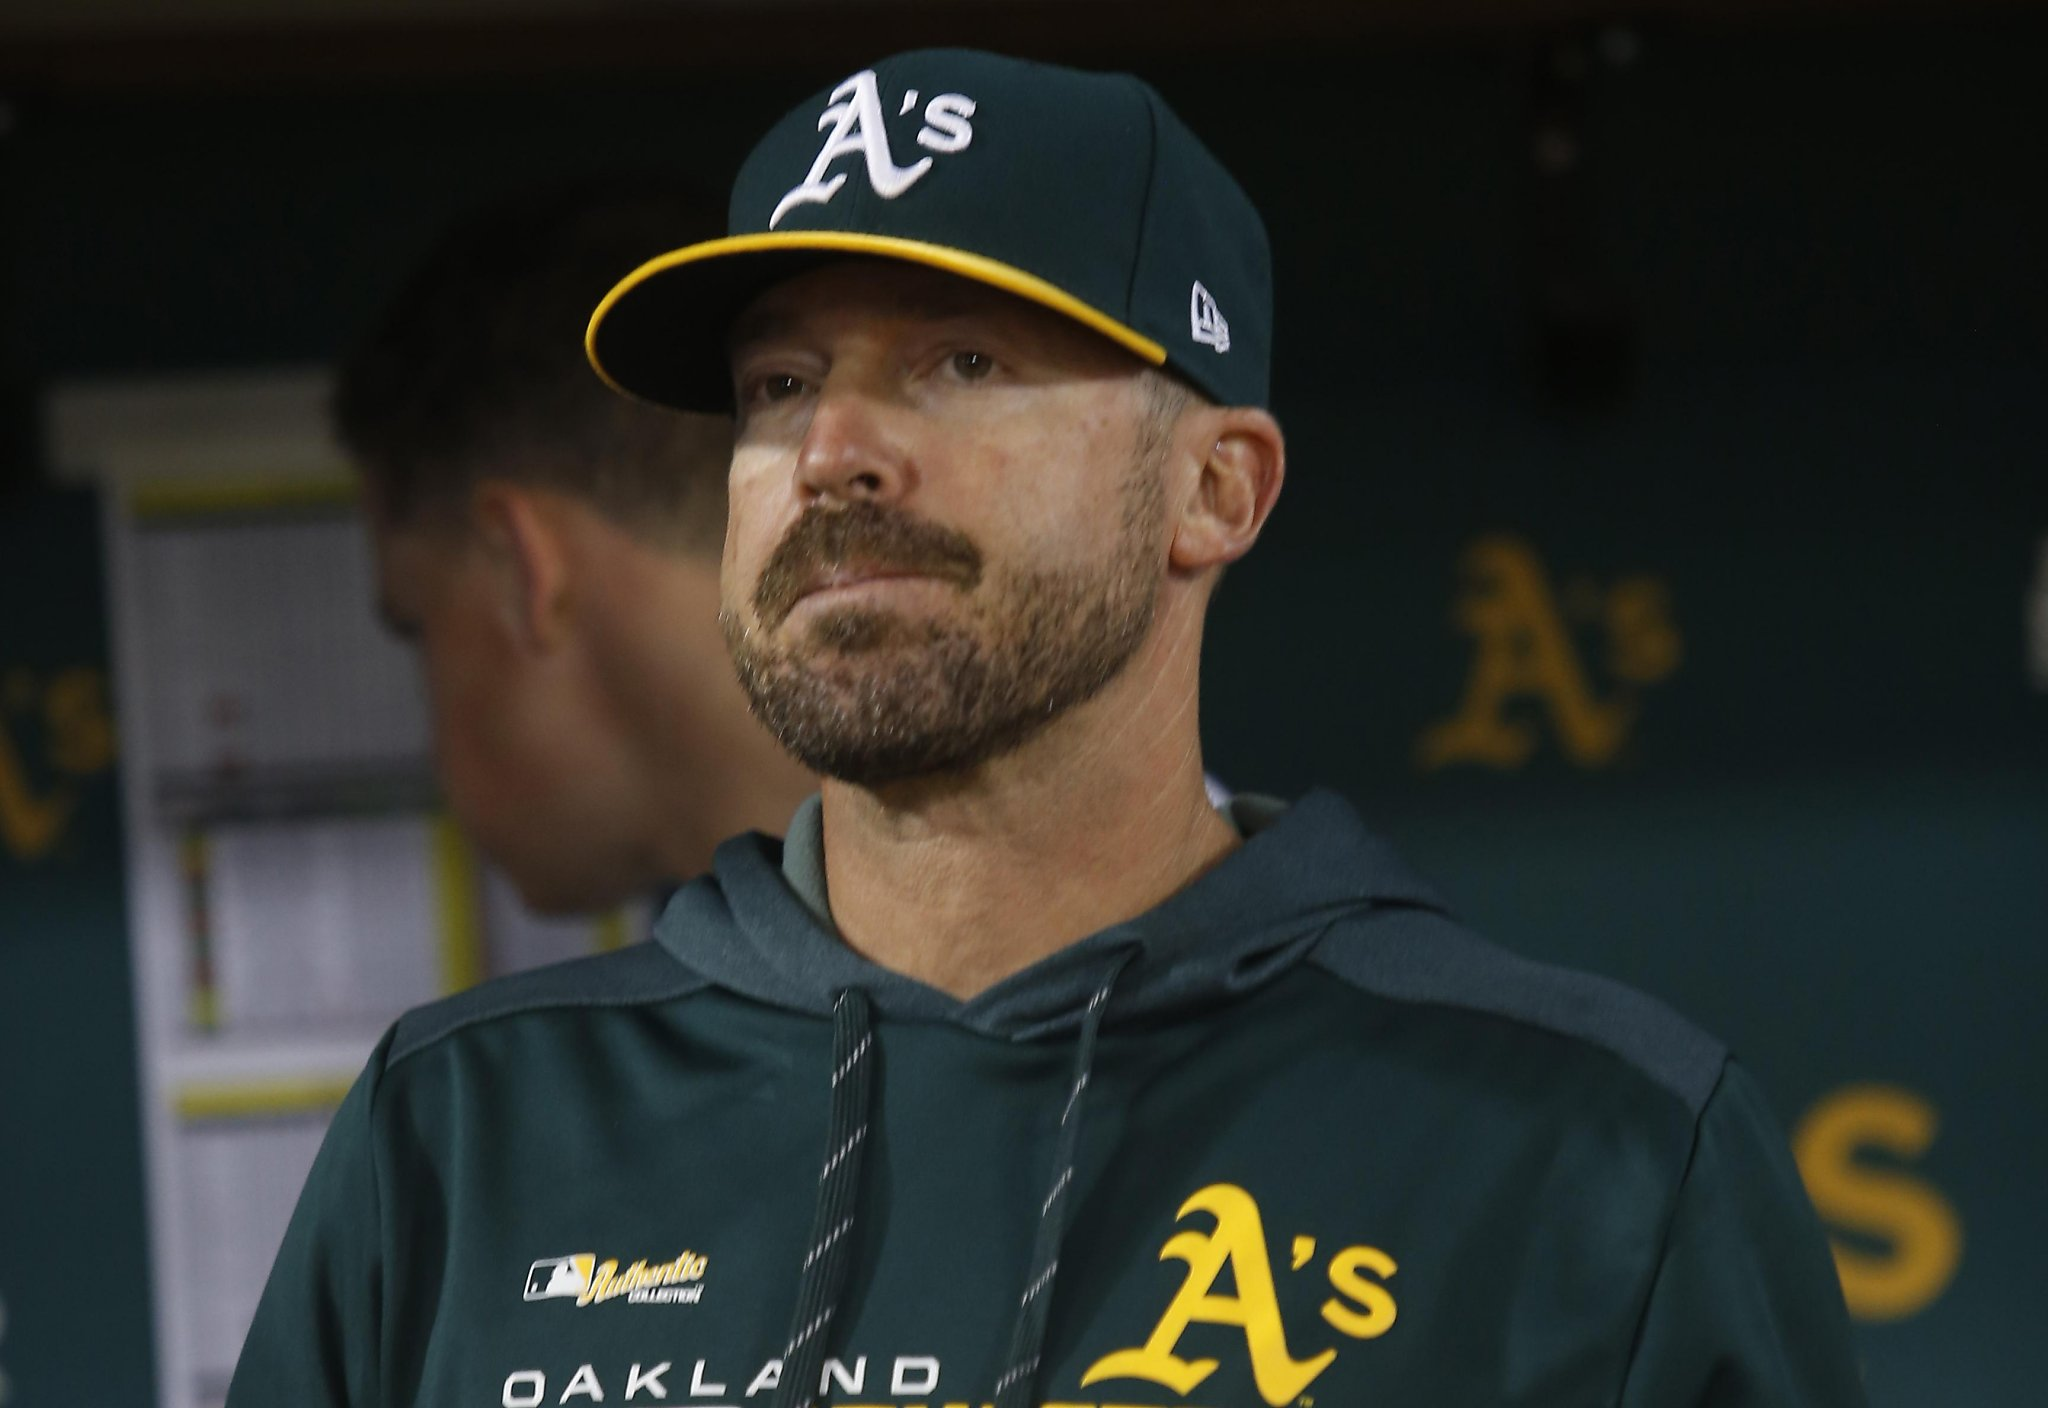 Oakland A's coach says apparent Nazi salute was 'not intentional'